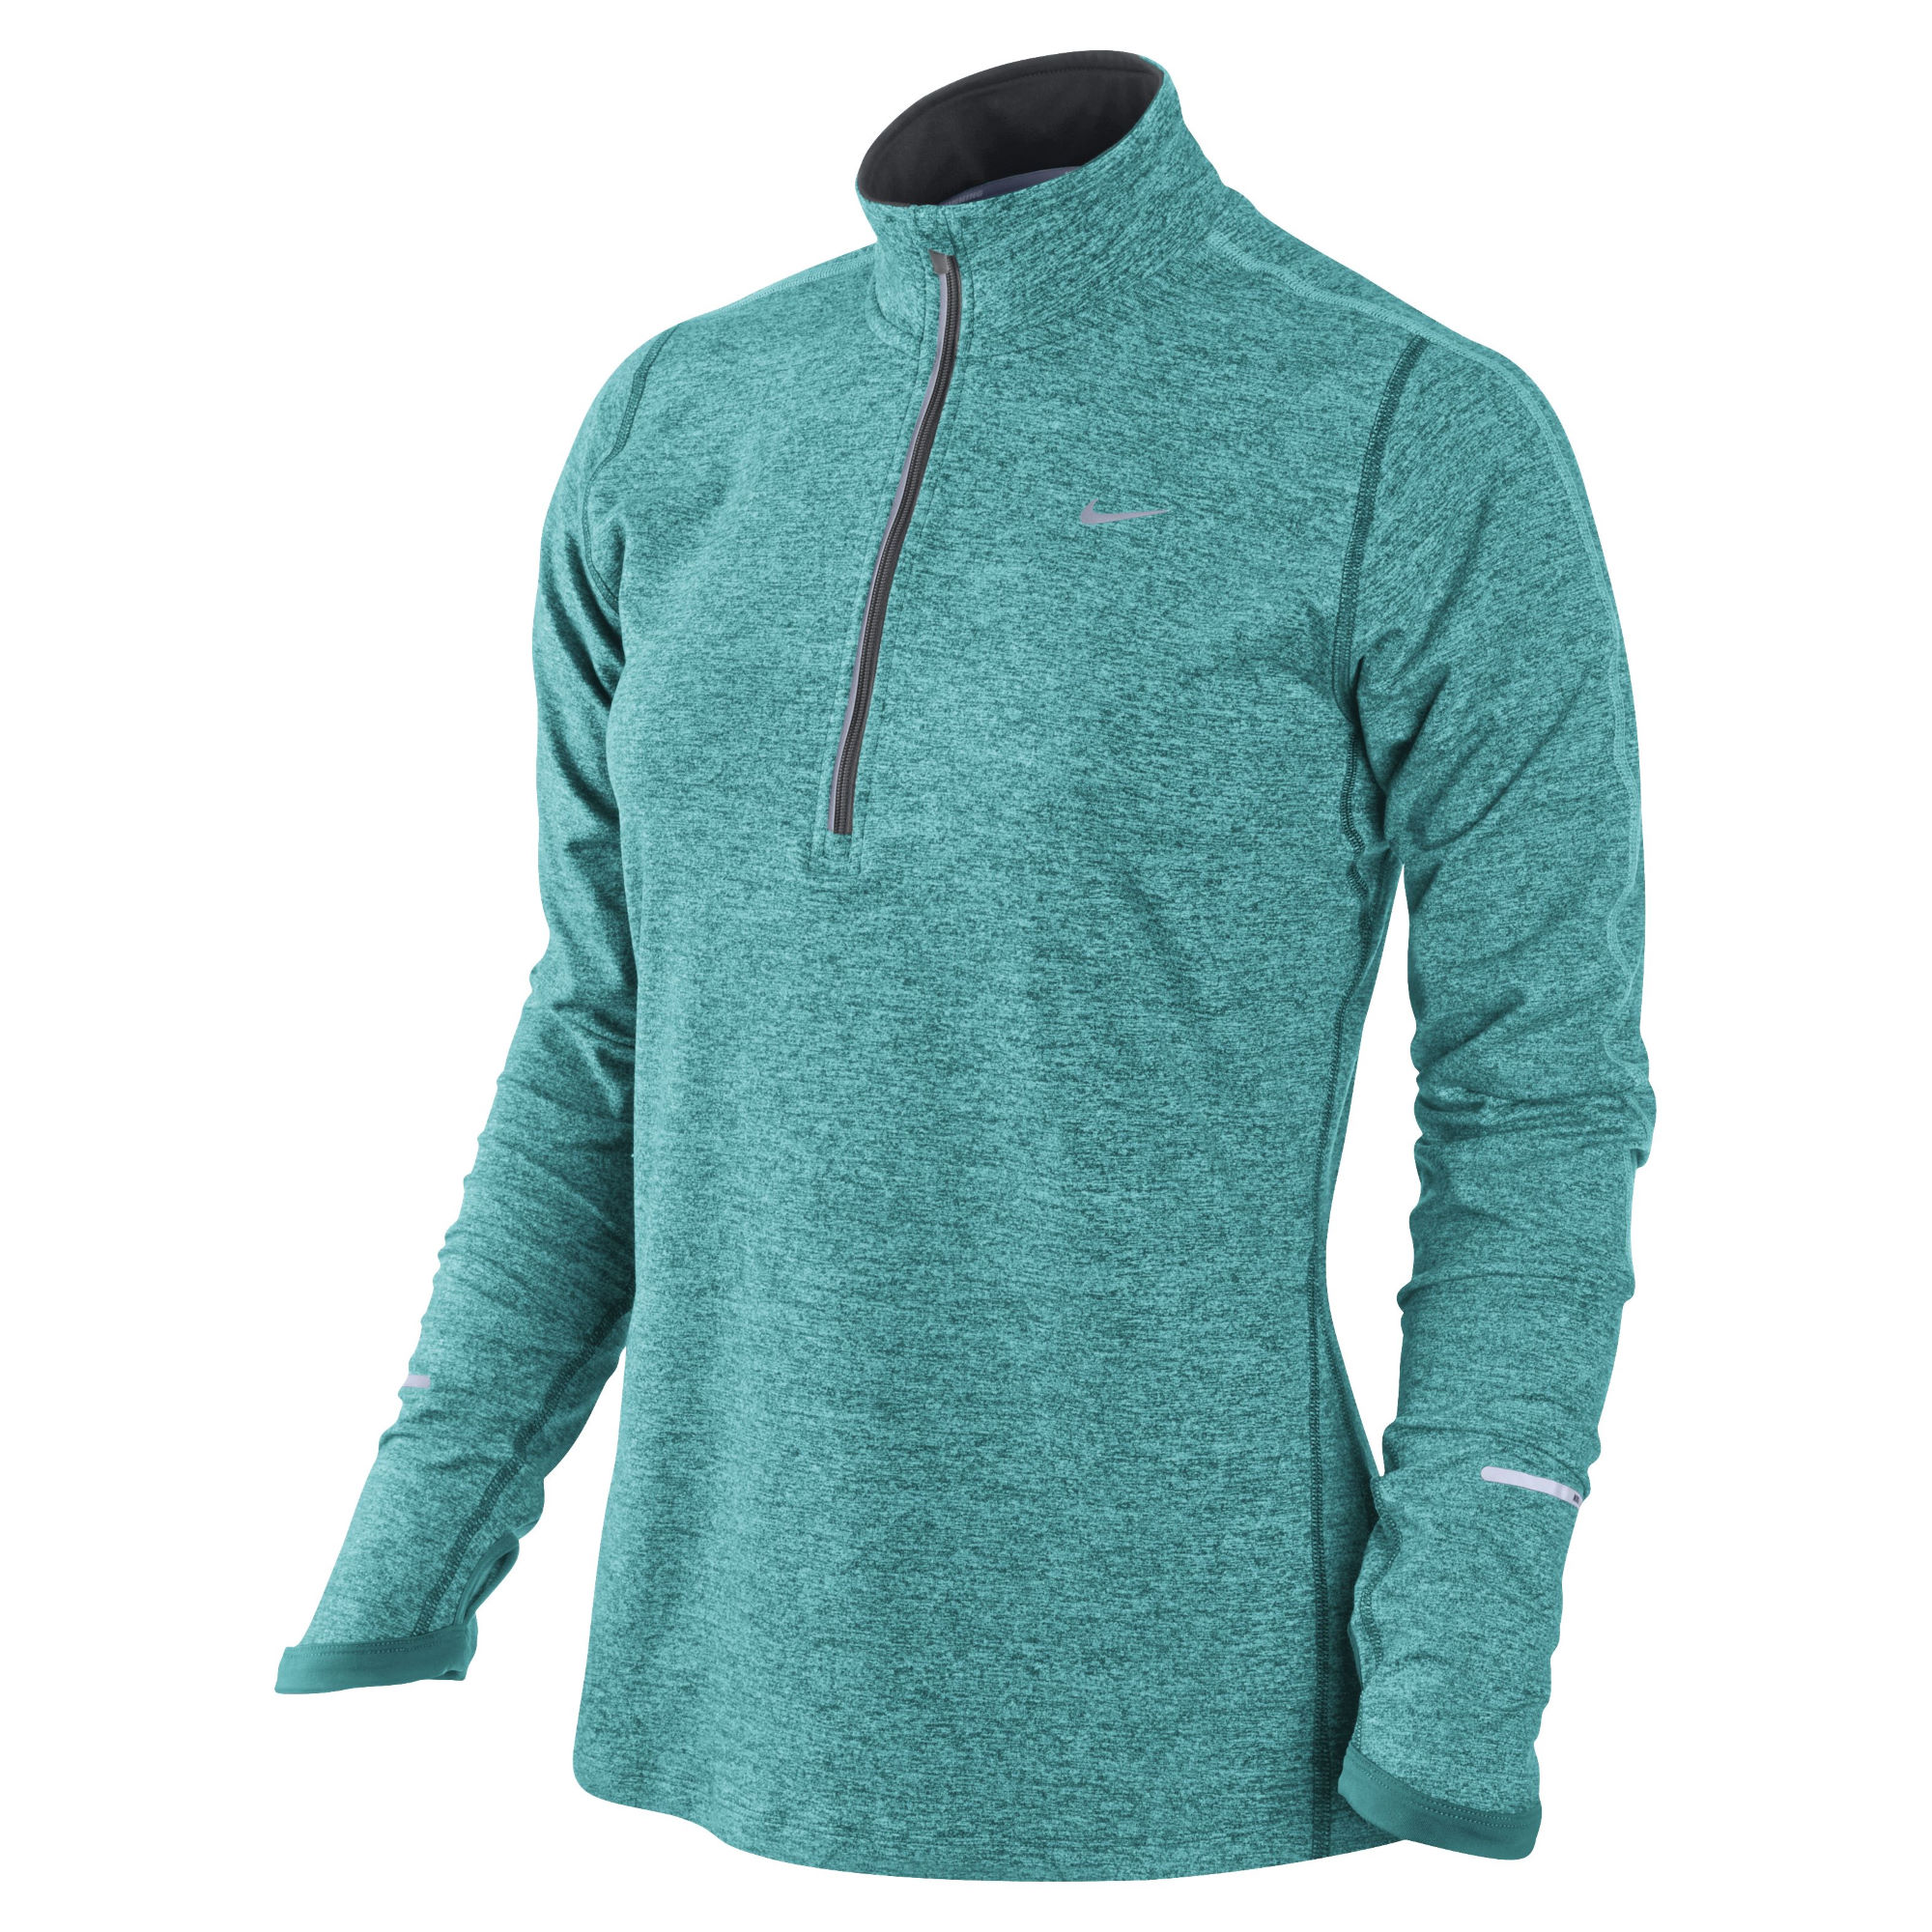 Wiggle nike women 39 s element half zip ho14 long for Women s running shirts